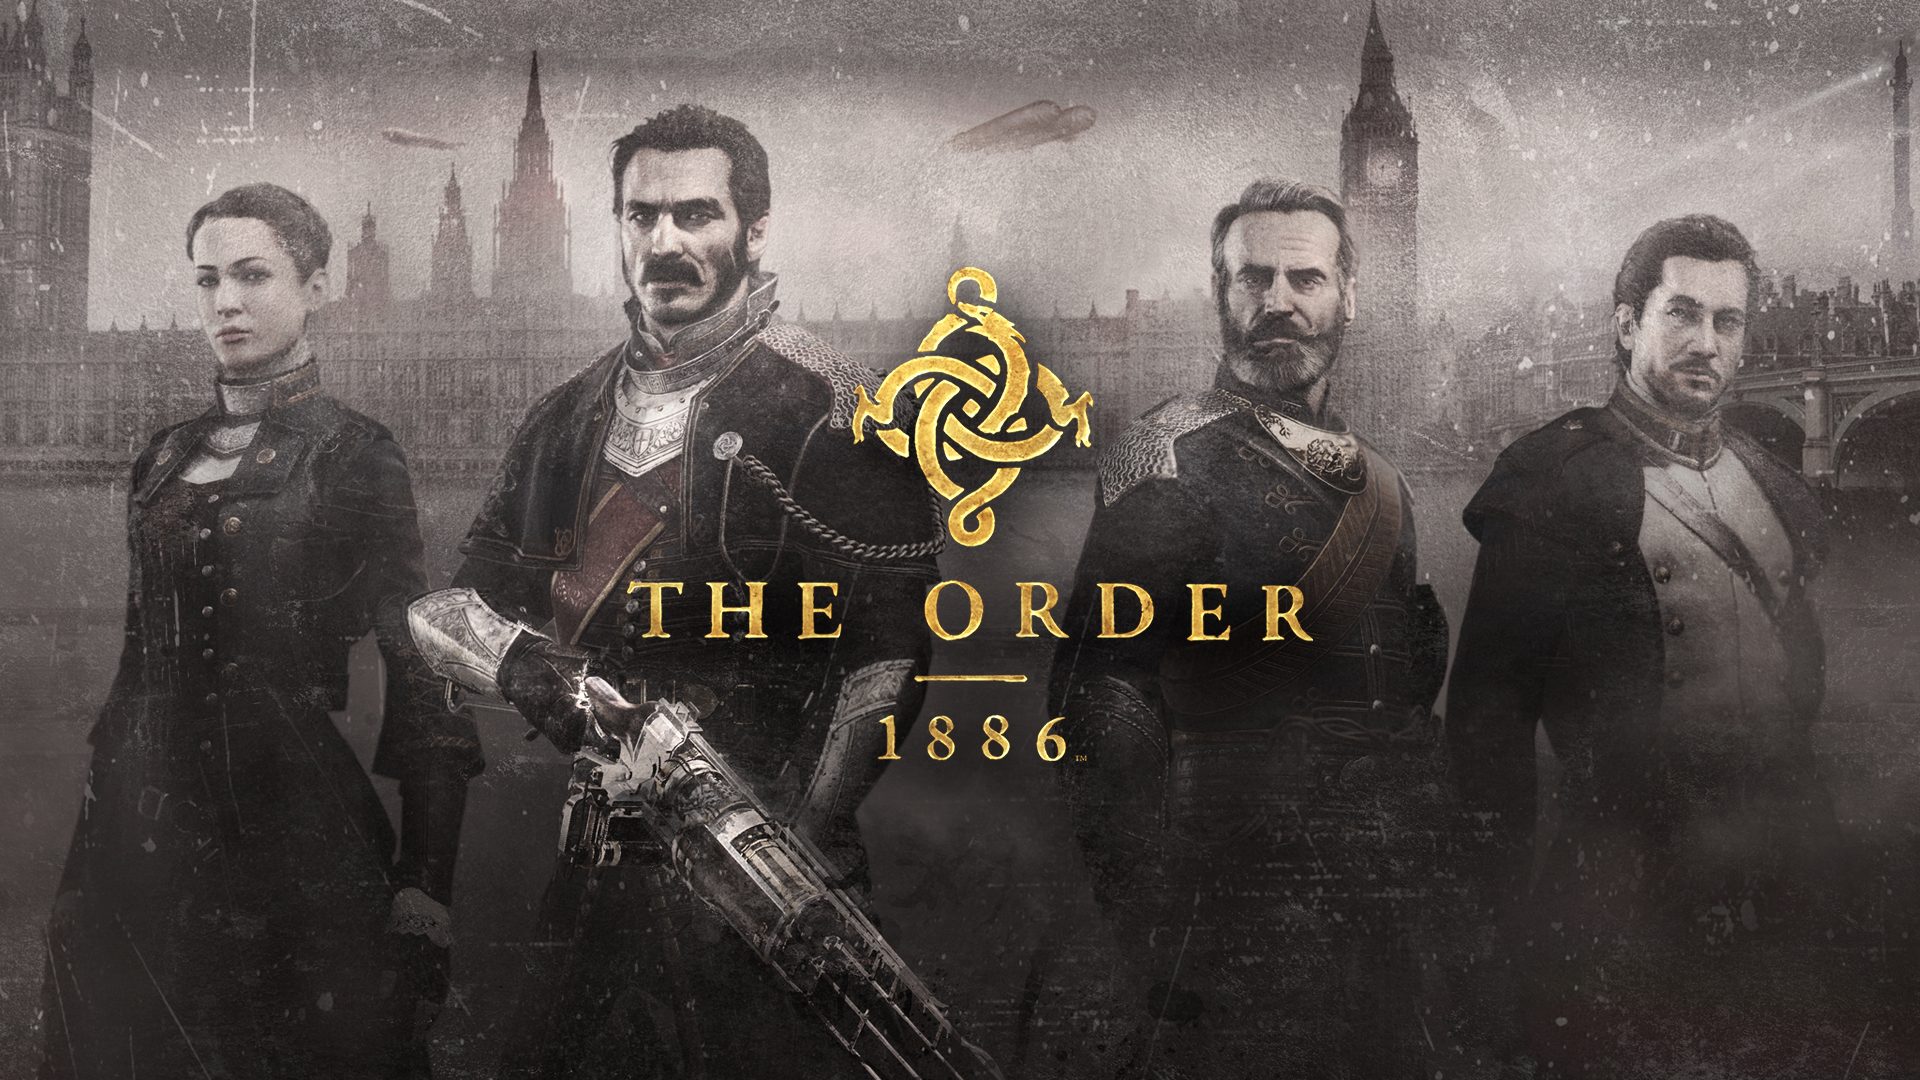 TheOrder_1886 170115